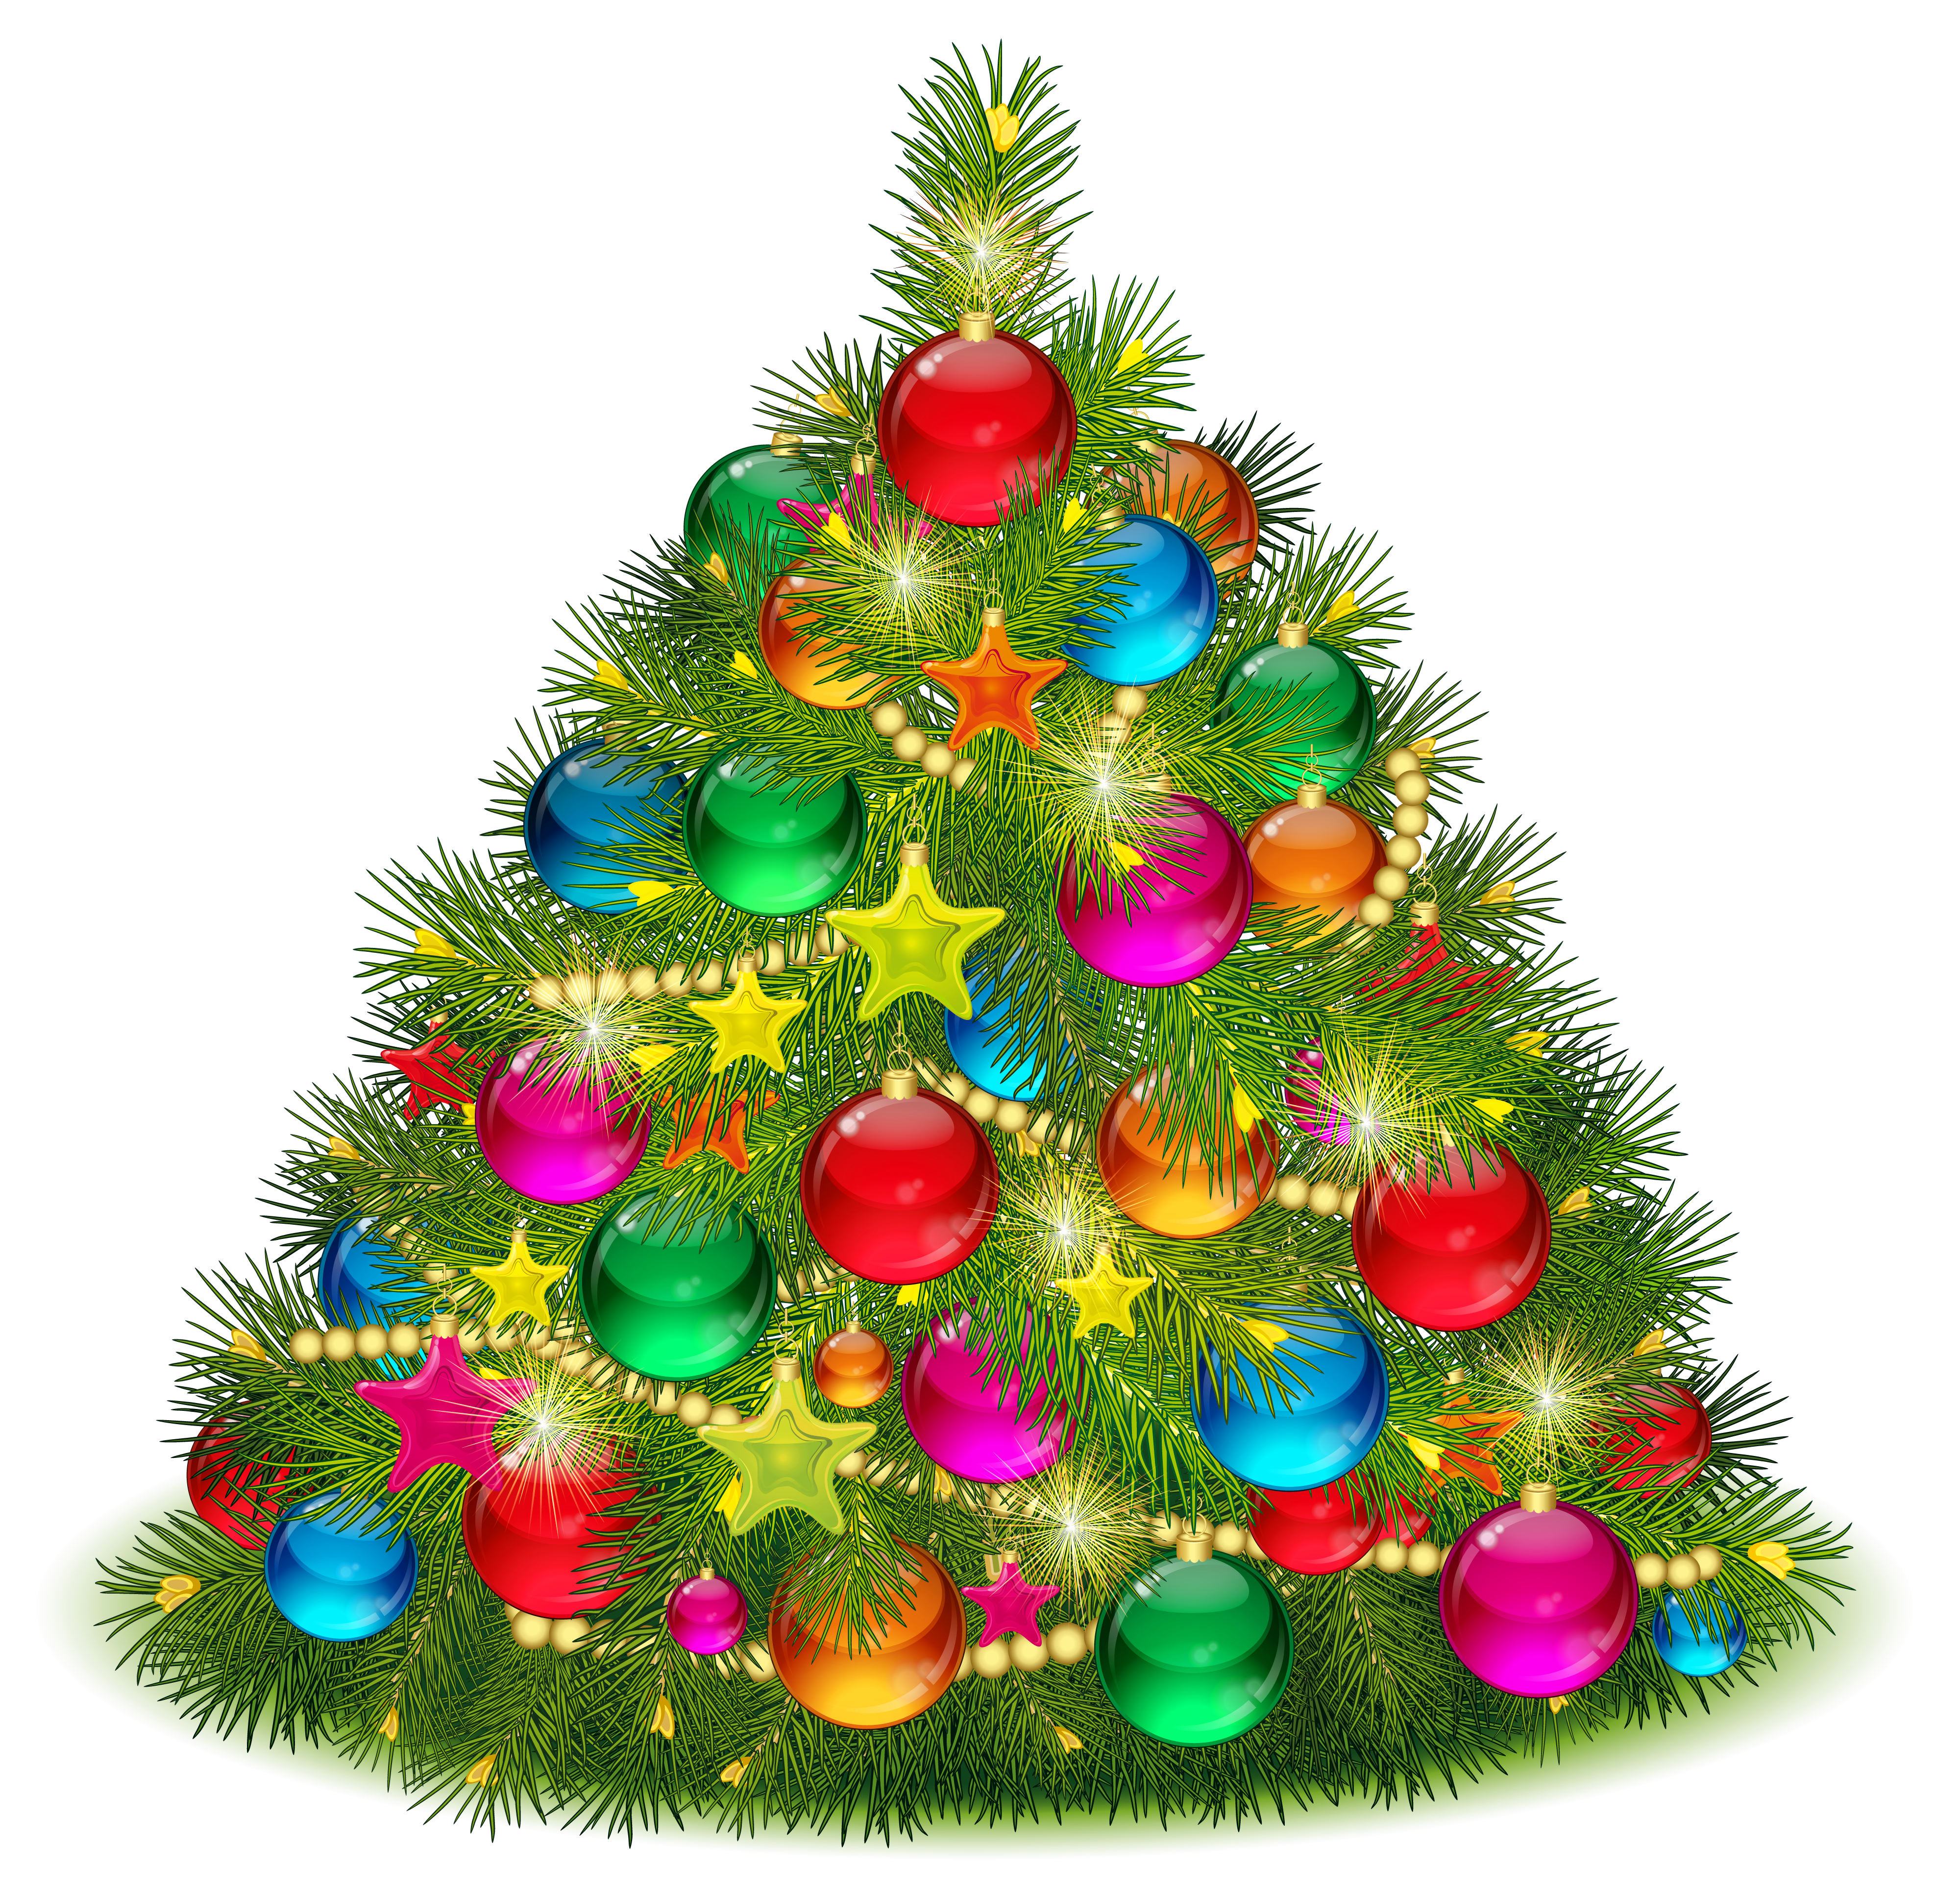 Christmas Tree Png Clipart .-Christmas Tree Png Clipart .-7